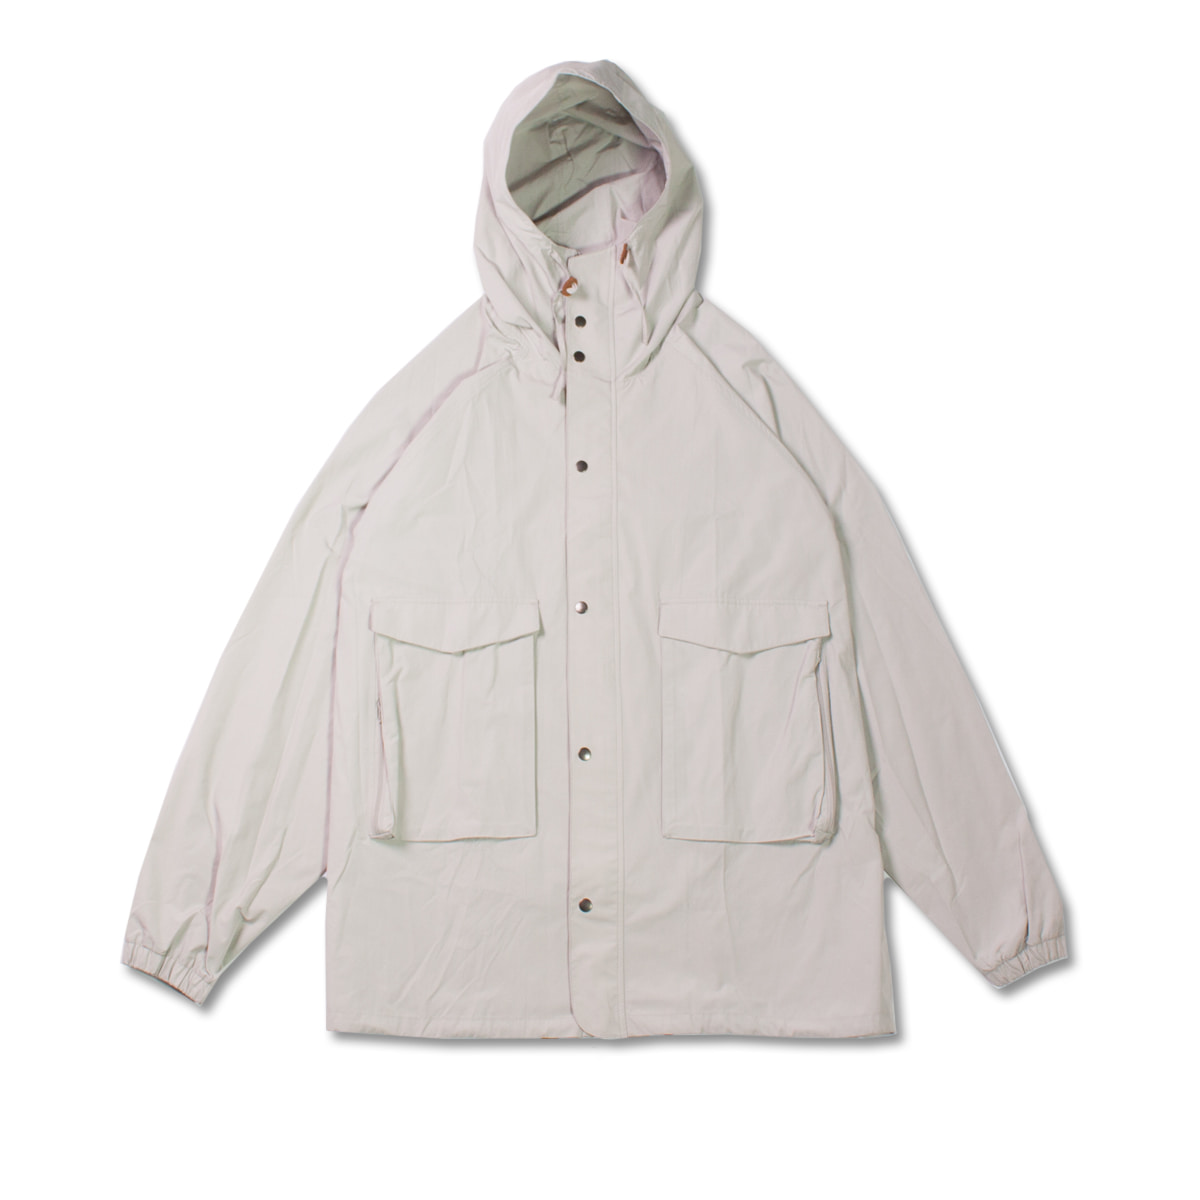 [8DIVISION] HODED WEP JACKET 'LIGHT GREY'